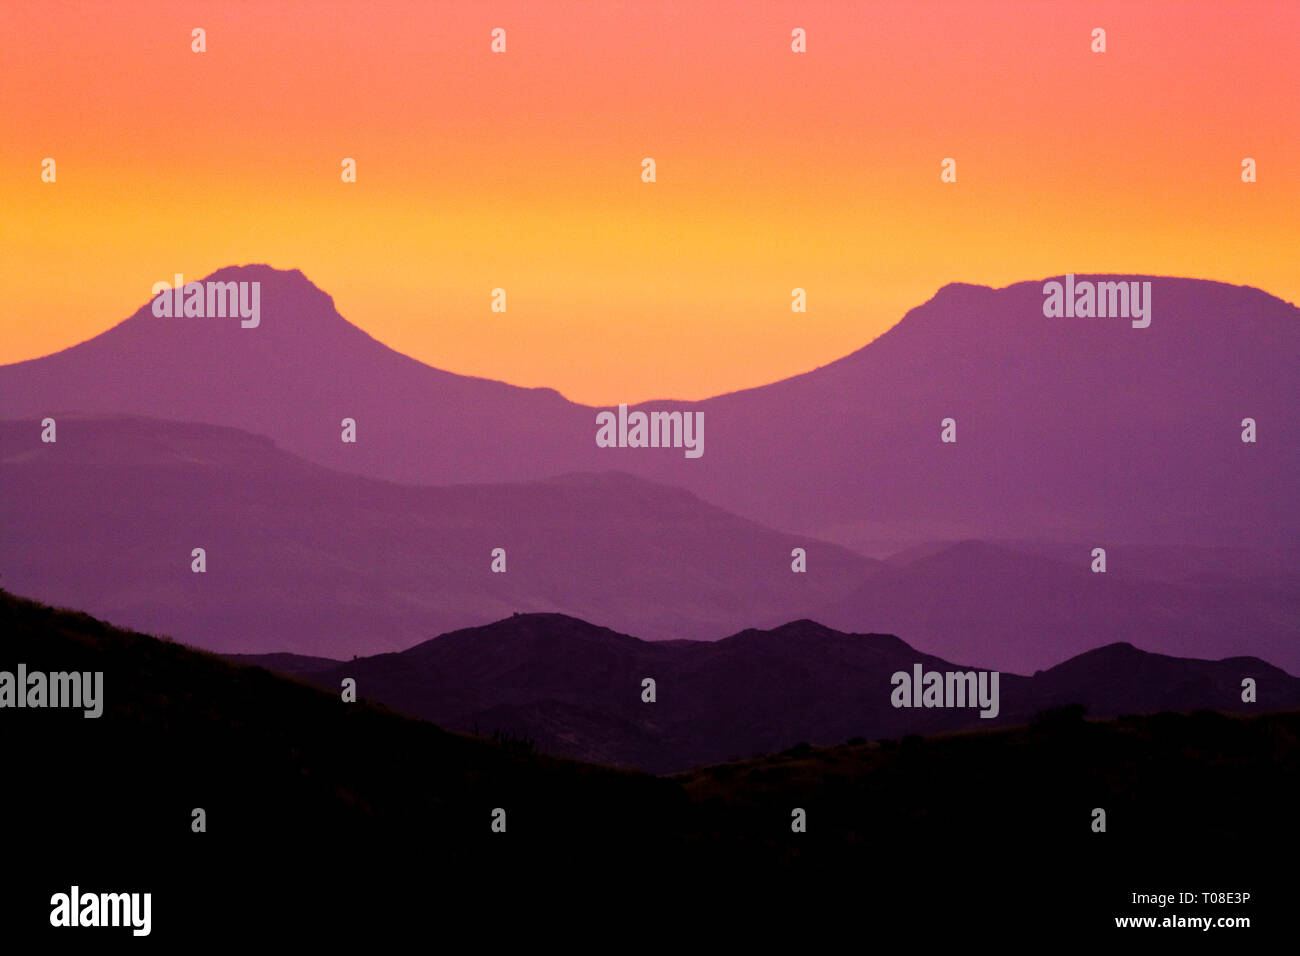 Africa, Namibia, Damaraland. Desert mountains at sunset. - Stock Image